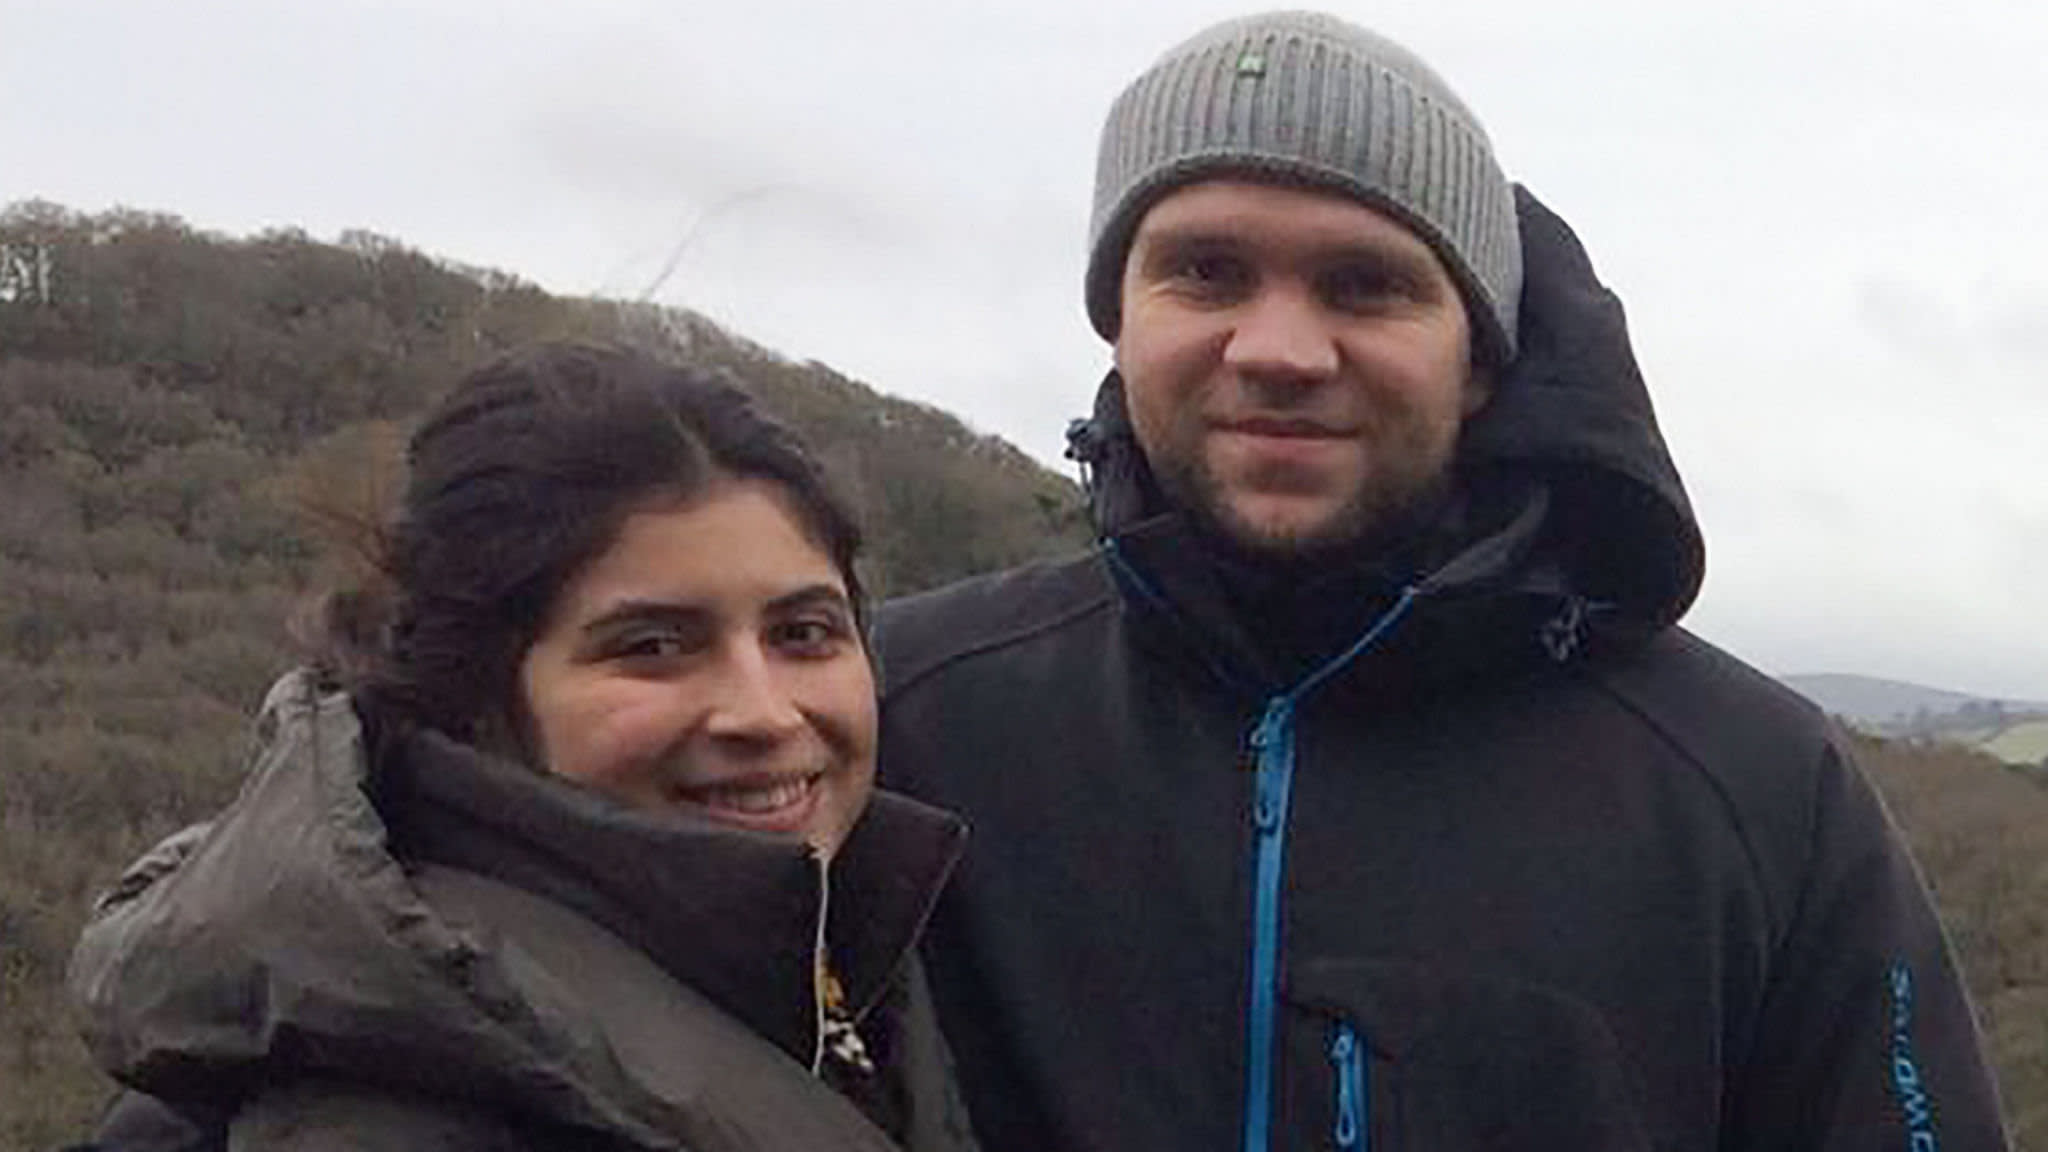 UK student sentenced to life in prison in UAE for spying